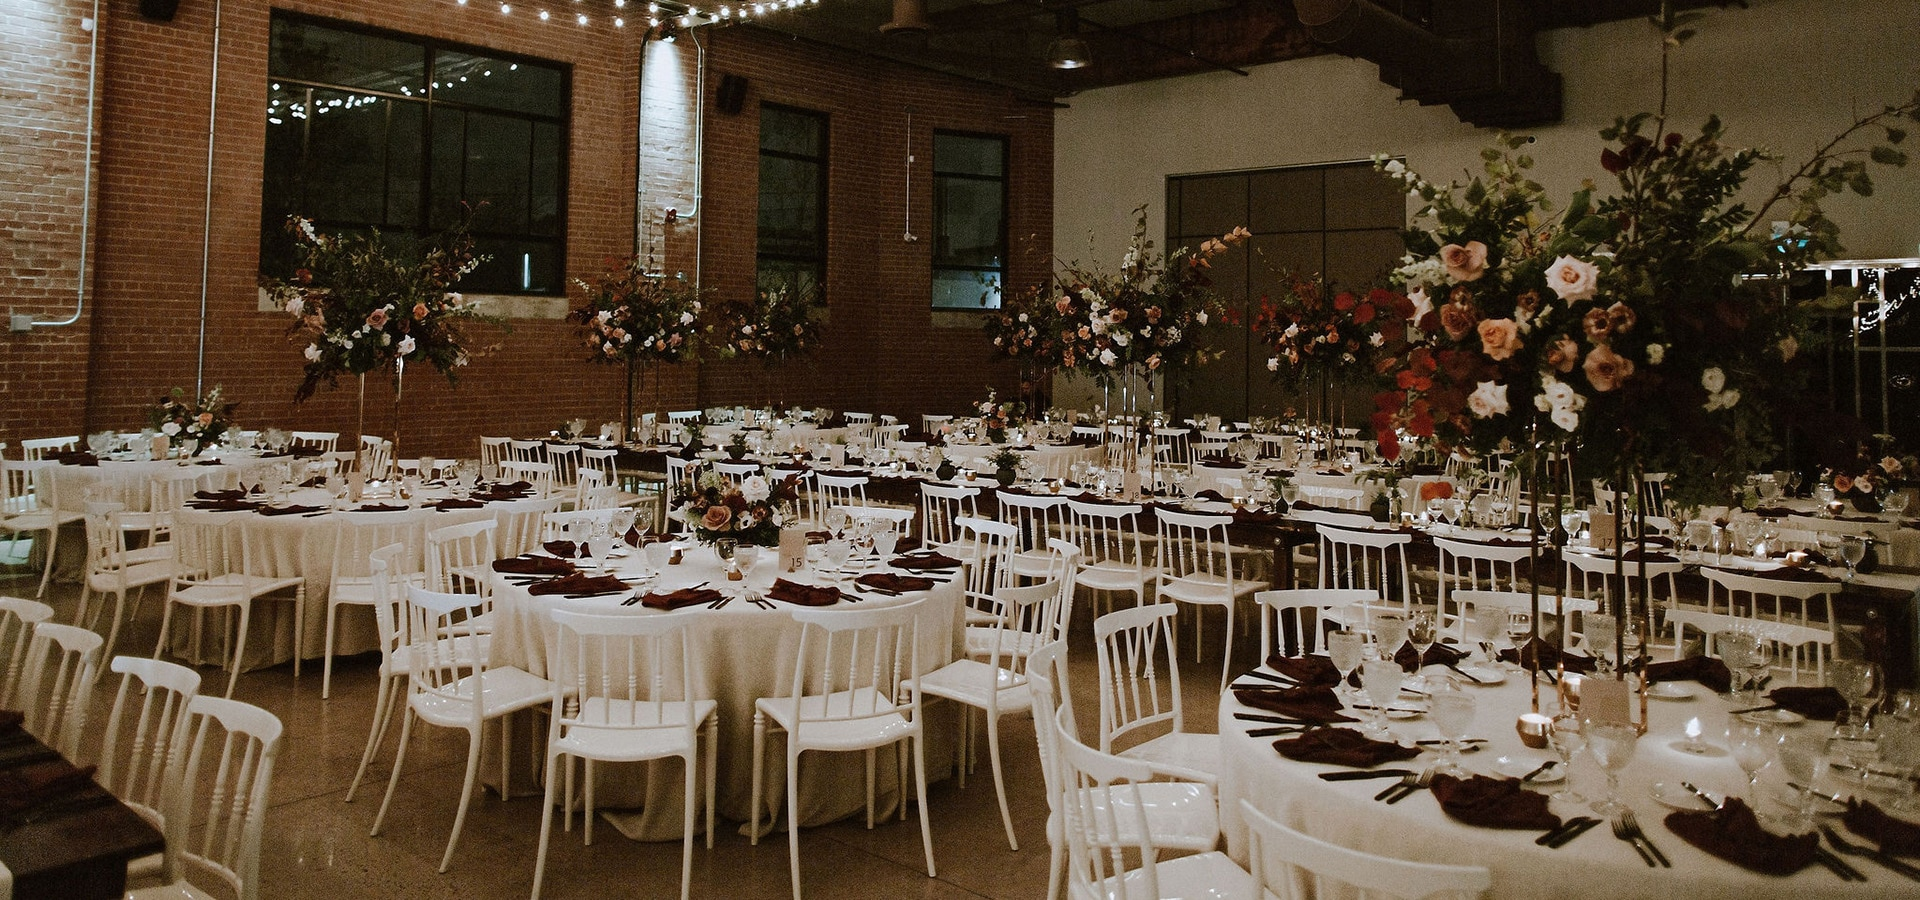 Hero image for How To Choose A Wedding Venue When You Can't See It In Person